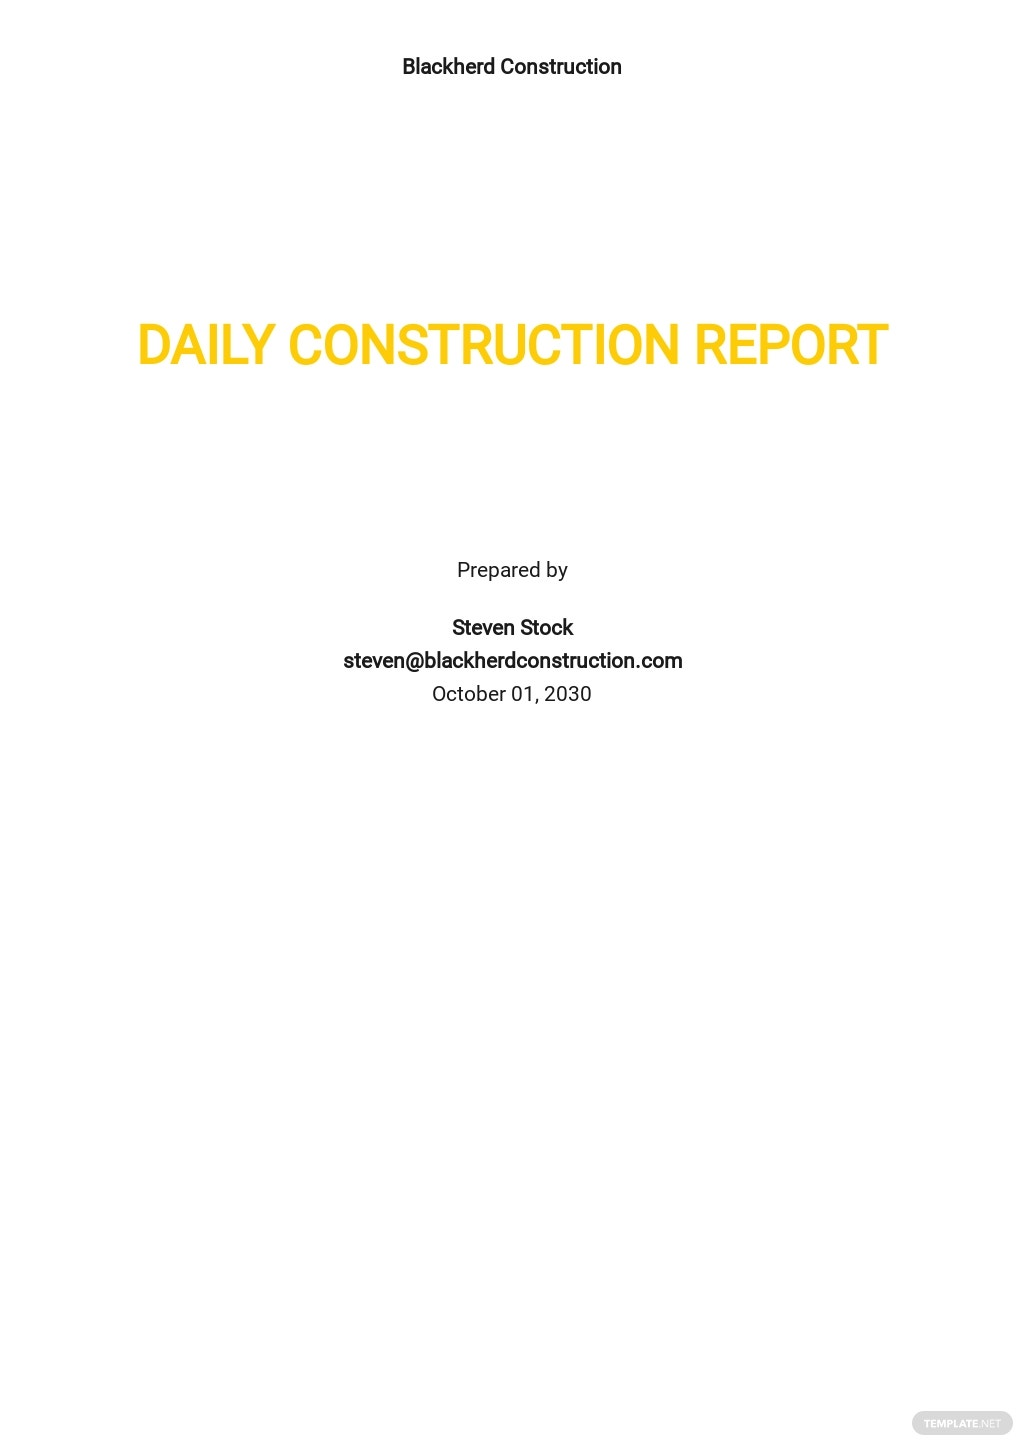 Daily Construction Report Template.jpe